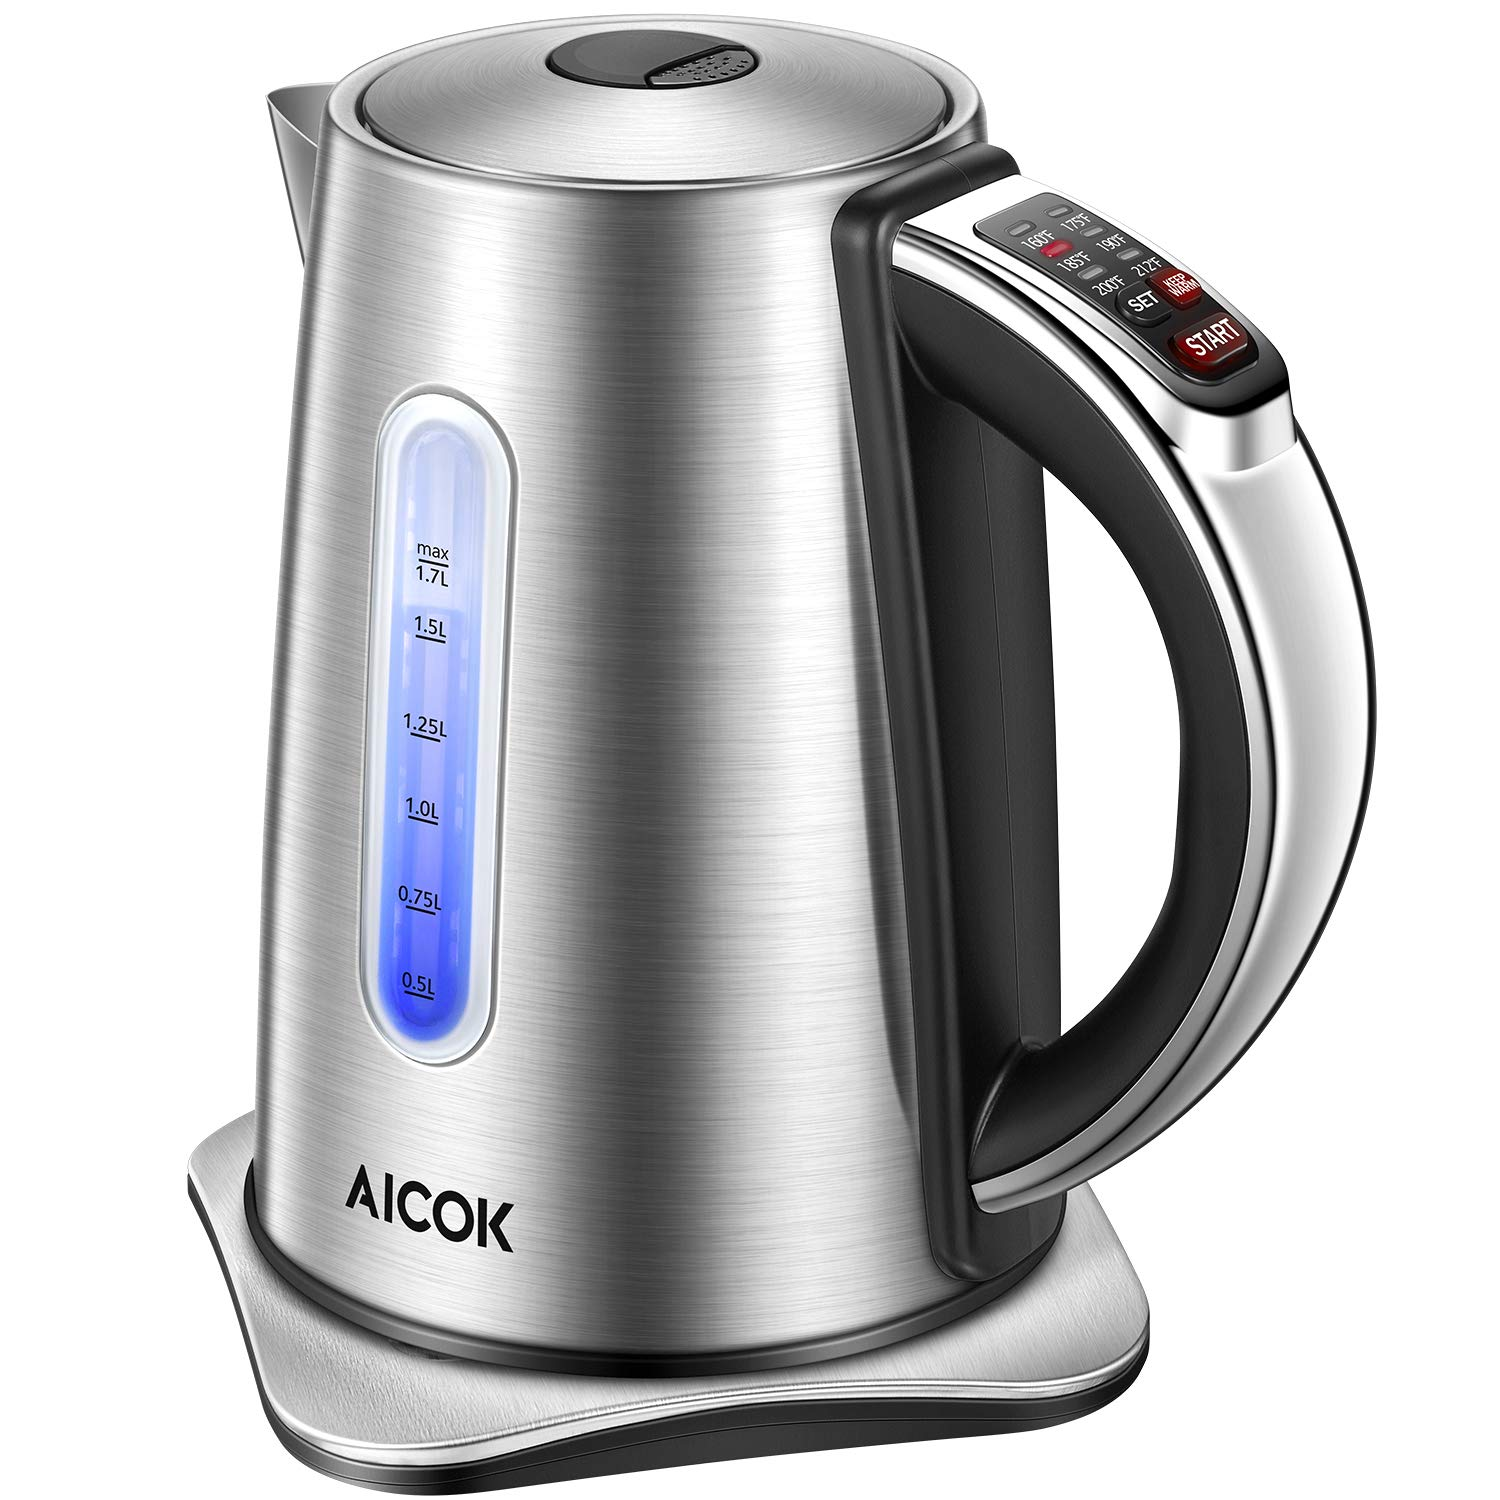 Electric kettle, Aicok Temperature Control kettle with 2 Hours Keep Warm Function, 1.7L Food Grade Stainless Steel Water Kettle, Double Water Indicator, BPA Free, 1500W